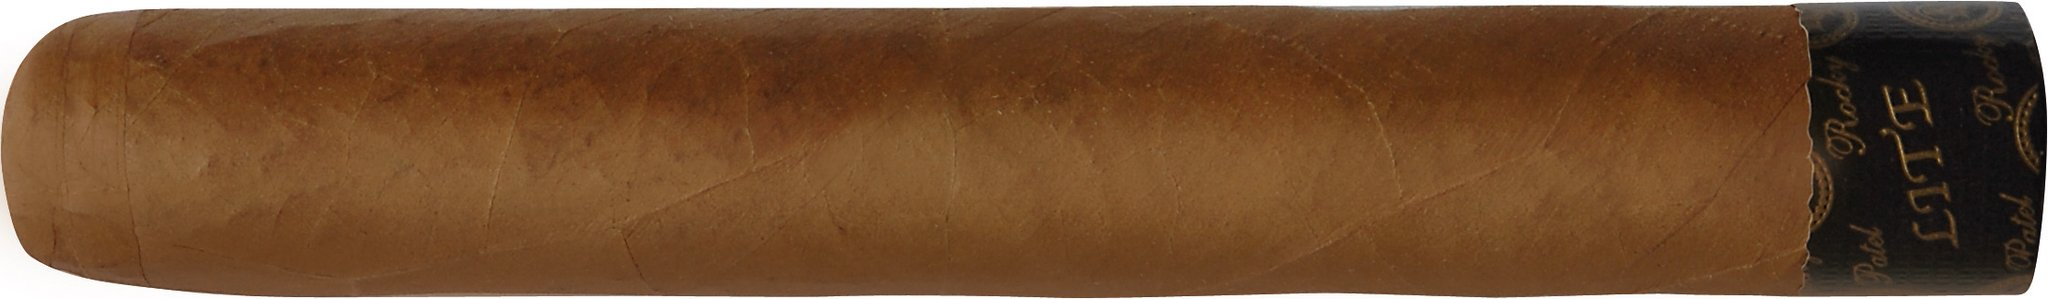 Rocky Patel The Edge Lite Robusto